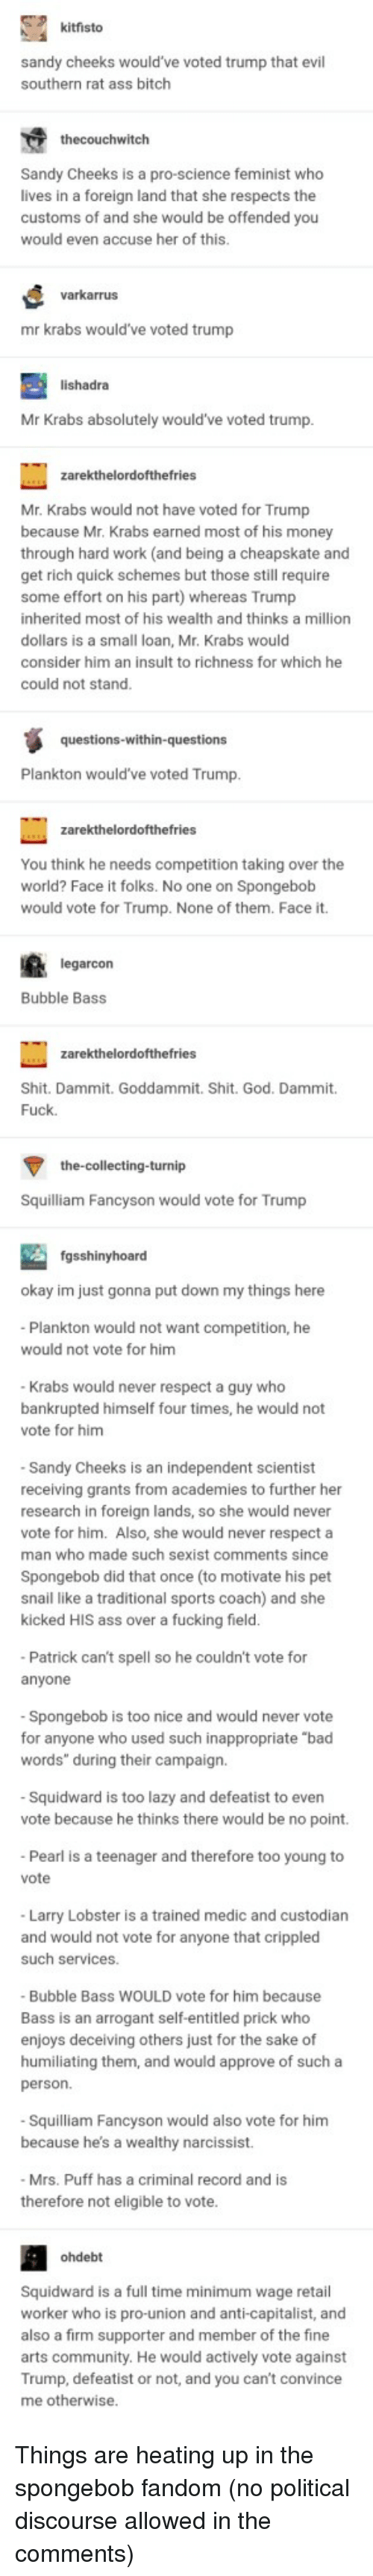 """Medic: kitfisto  sandy cheeks would've voted trump that evil  southern rat ass bitch  thecouchwitch  Sandy Cheeks is a pro-science feminist who  lives in a foreign land that she respects the  customs of and she would be offended you  would even accuse her of this.  varkarrus  mr krabs would've voted trump  lishadra  Mr Krabs absolutely would've voted trump  Mr. Krabs would not have voted for Trump  because Mr. Krabs earned most of his money  through hard work (and being a cheapskate and  get rich quick schemes but those still require  some effort on his part) whereas Trump  inherited most of his wealth and thinks a million  dollars is a small loan, Mr. Krabs would  consider him an insult to richness for which he  could not stand  Plankton would've voted Trump  You think he needs competition taking over the  world? Face it folks. No one on Spongebob  would vote for Trump. None of them. Face it.  arcon  Bubble Bass  Shit. Dammit. Goddammit. Shit. God. Dammit.  Fuck  the-collecting-turnip  Squilliam Fancyson would vote for Trump  fgsshinyhoard  okay im just gonna put down my things here  Plankton would not want competition, he  would not vote for him  Krabs would never respect a guy who  bankrupted himself four times, he would not  vote for him  Sandy Cheeks is an independent scientist  receiving grants from academies to further her  research in foreign lands, so she would never  vote for him. Also, she would never respect a  man who made such sexist comments since  Spongebob did that once (to motivate his pet  snail like a traditional sports coach) and she  kicked HIS ass over a fucking field  Patrick can't spell so he couldn't vote for  anyone  Spongebob is too nice and would never vote  for anyone who used such inappropriate """"bad  words"""" during their campaign.  Squidward is too lazy and defeatist to even  vote because he thinks there would be no point.  Pearl is a teenager and therefore too young to  vote  Larry Lobster is a trained medic and custodian  and would no"""